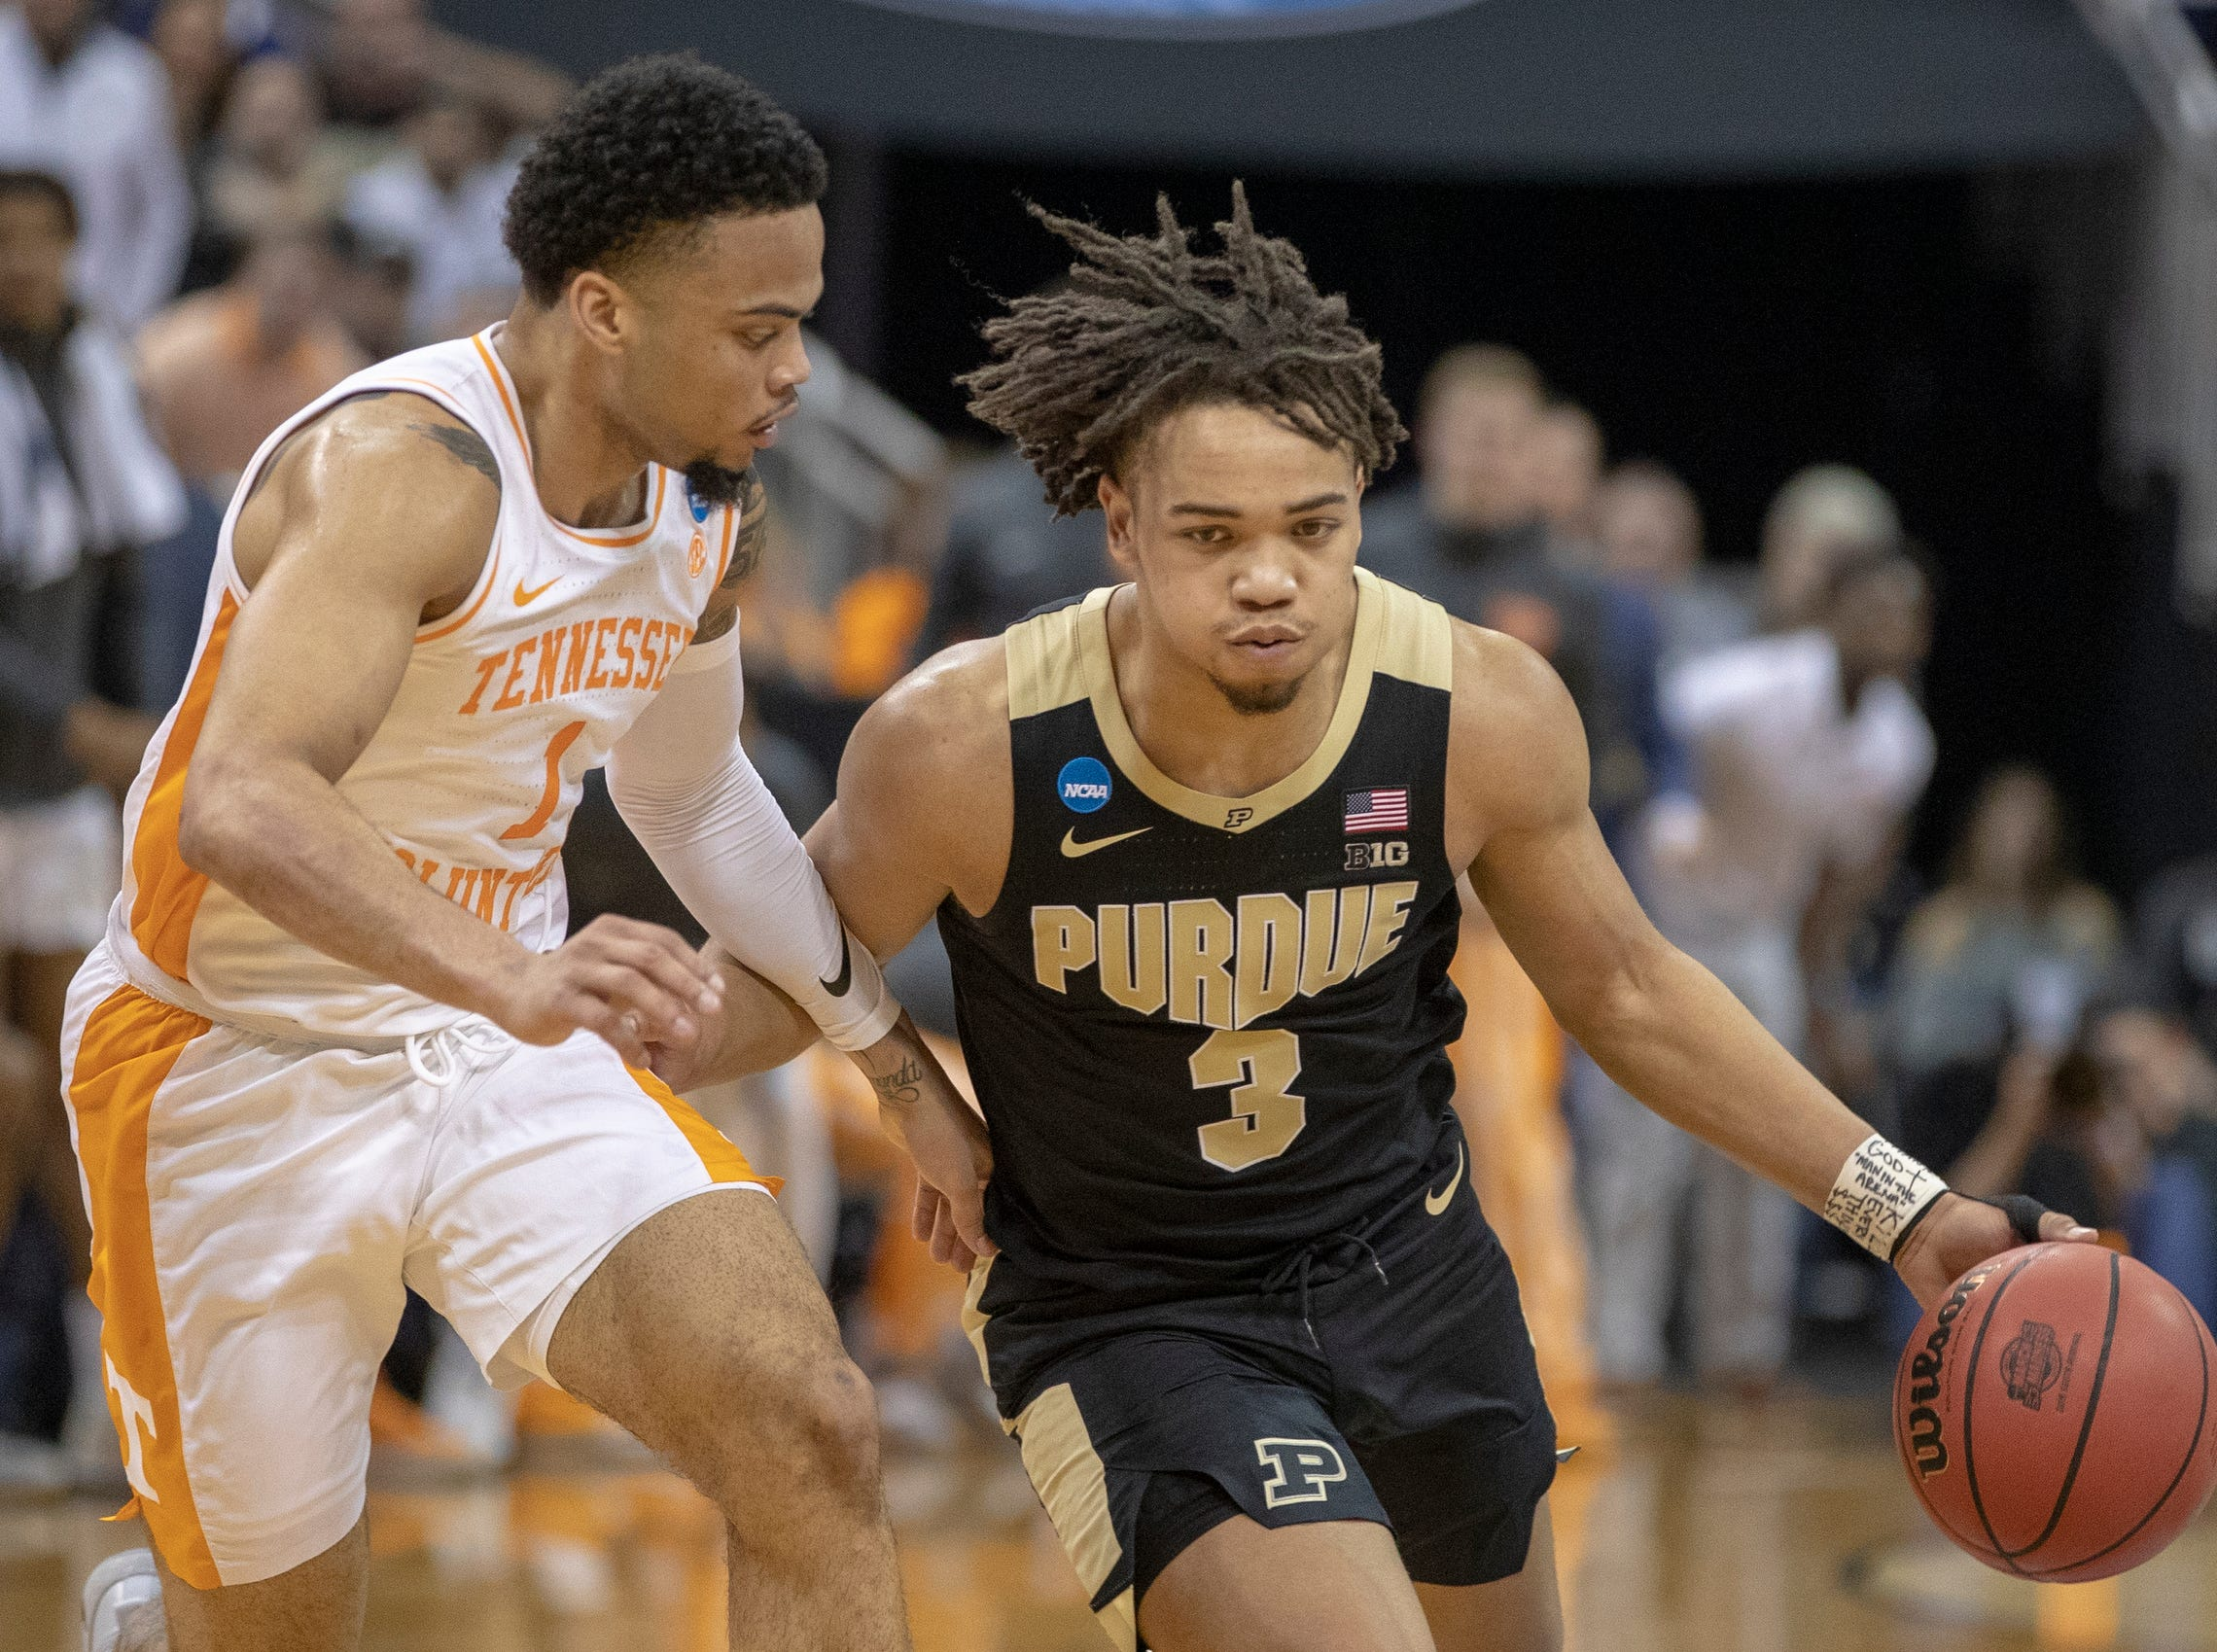 Lamonte Turner of the Tennessee Volunteers defends Carsen Edwards of the Purdue Boilermakers, NCAA Division 1 Men's Basketball 'Sweet Sixteen' game, KFC Yum Center, Louisville, Thursday, March 28, 2019. Purdue beat Tennessee 99-94.